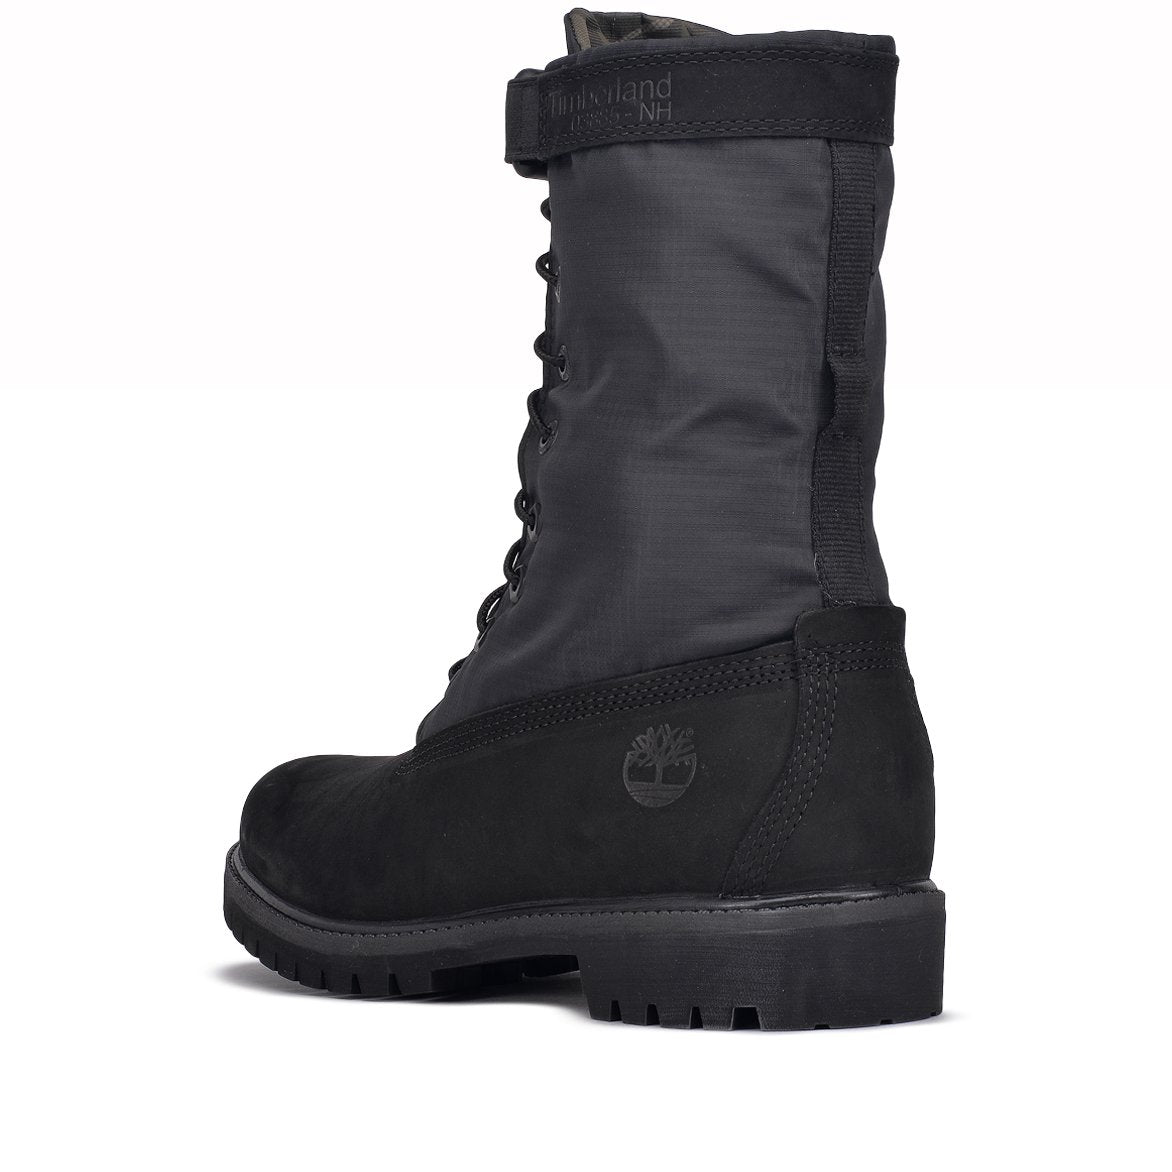 "SPECIAL RELEASE 6"" MIXED MEDIA GAITER BOOT - BLACK"